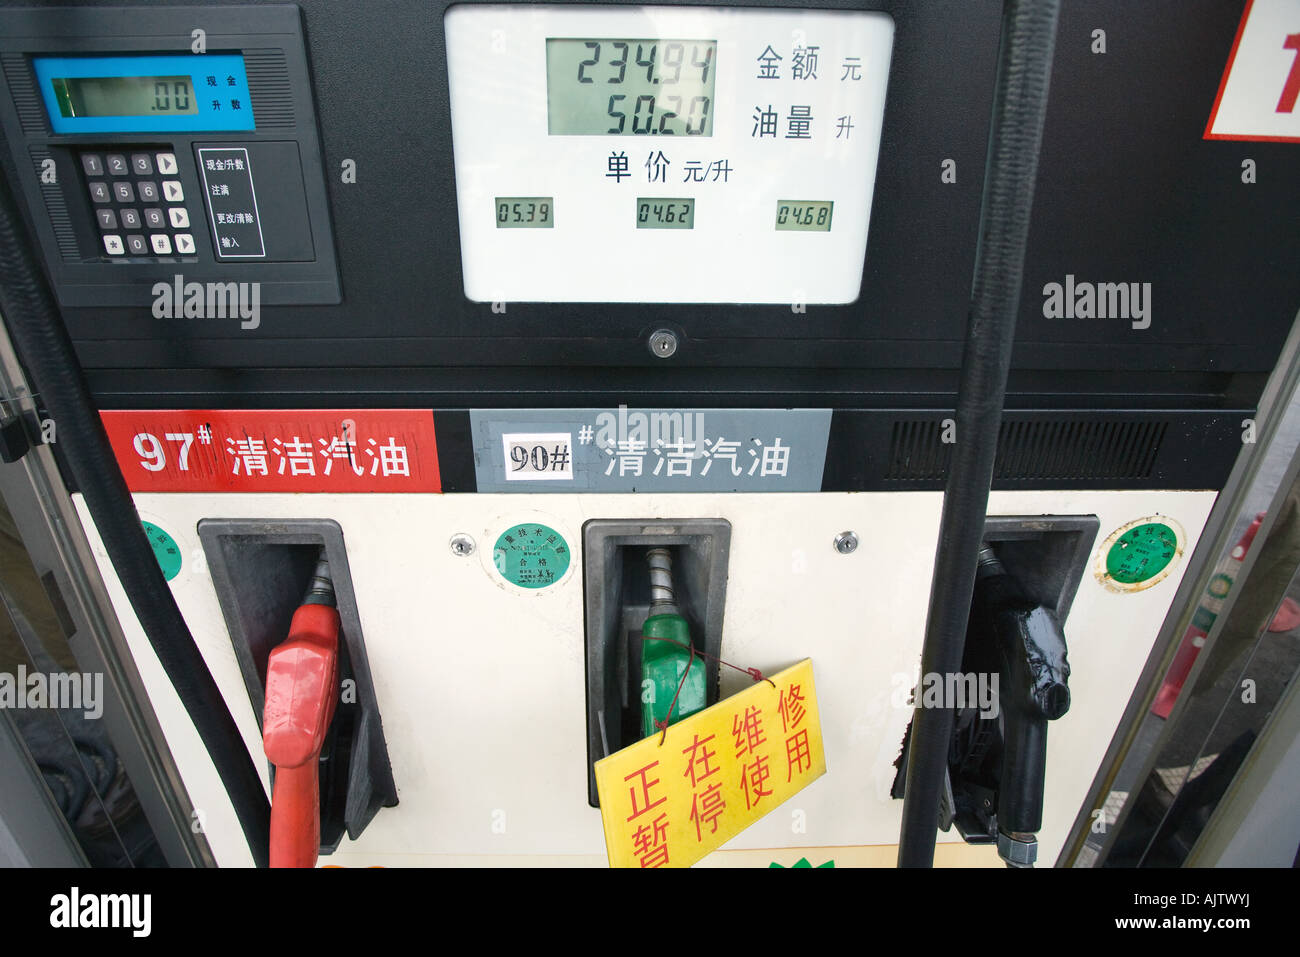 Chinese gas pump - Stock Image